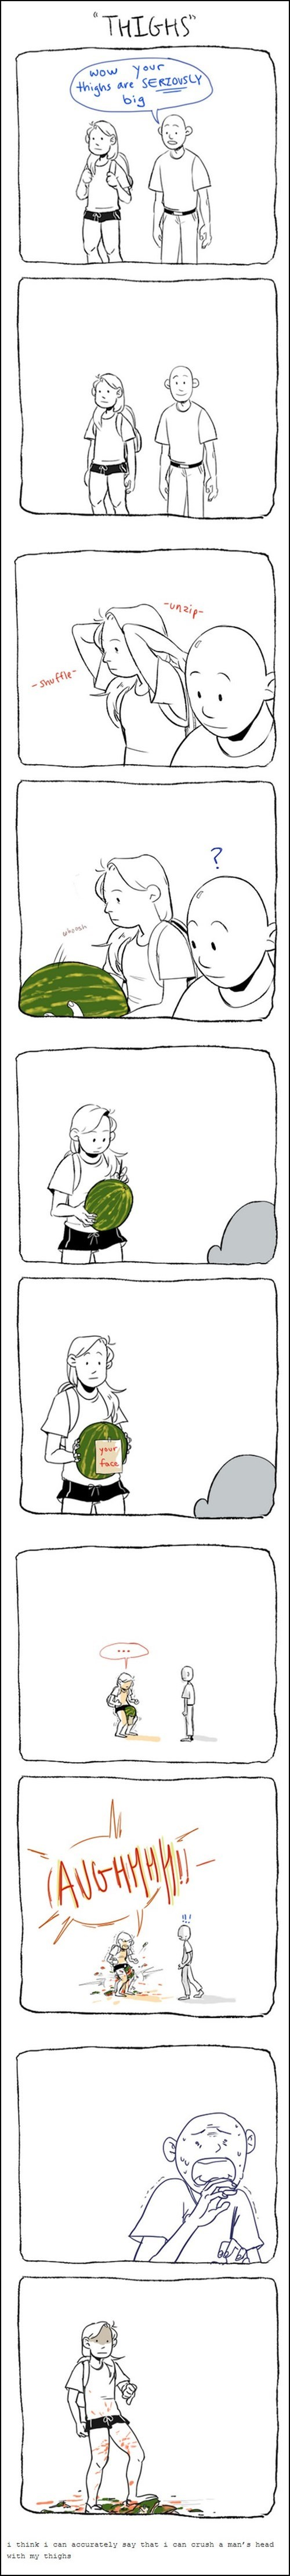 watermelon jerks thighs web comics - 8265059072